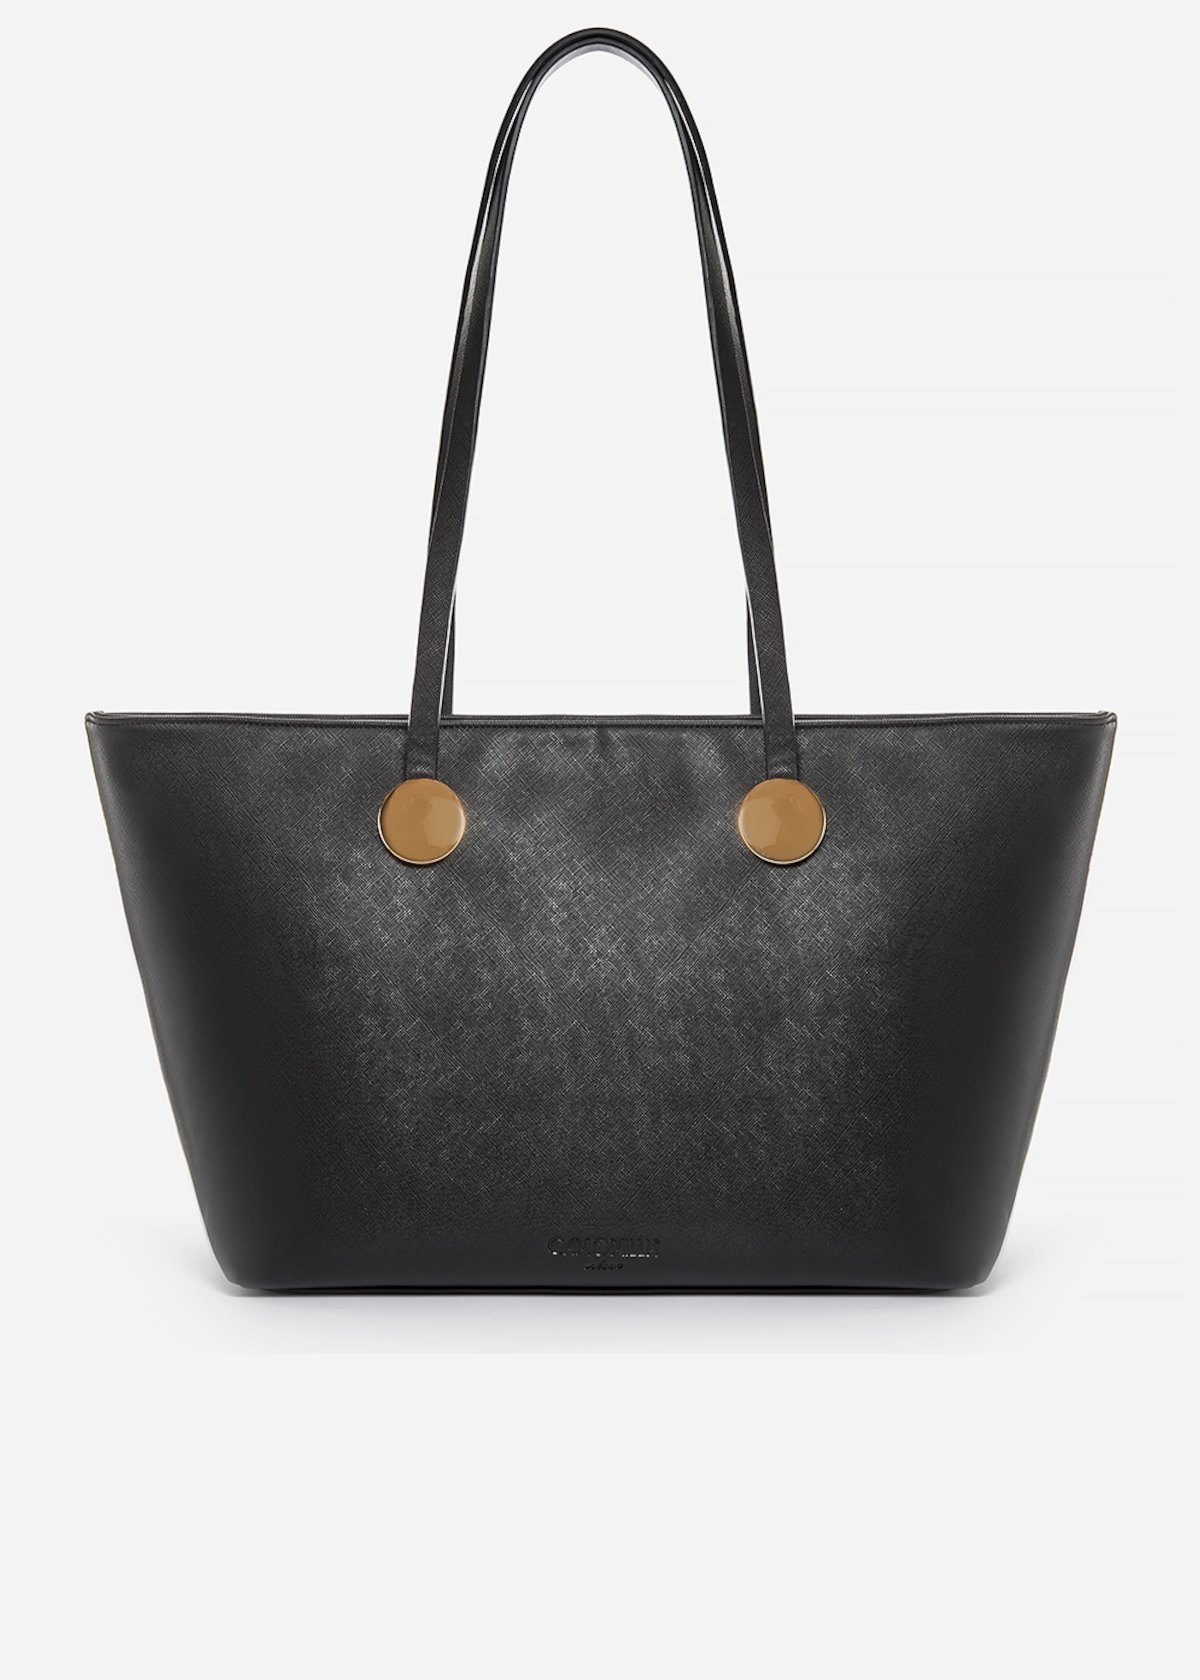 Brisha shopping bag of faux leather saffiano effect with metal ring detail - Black